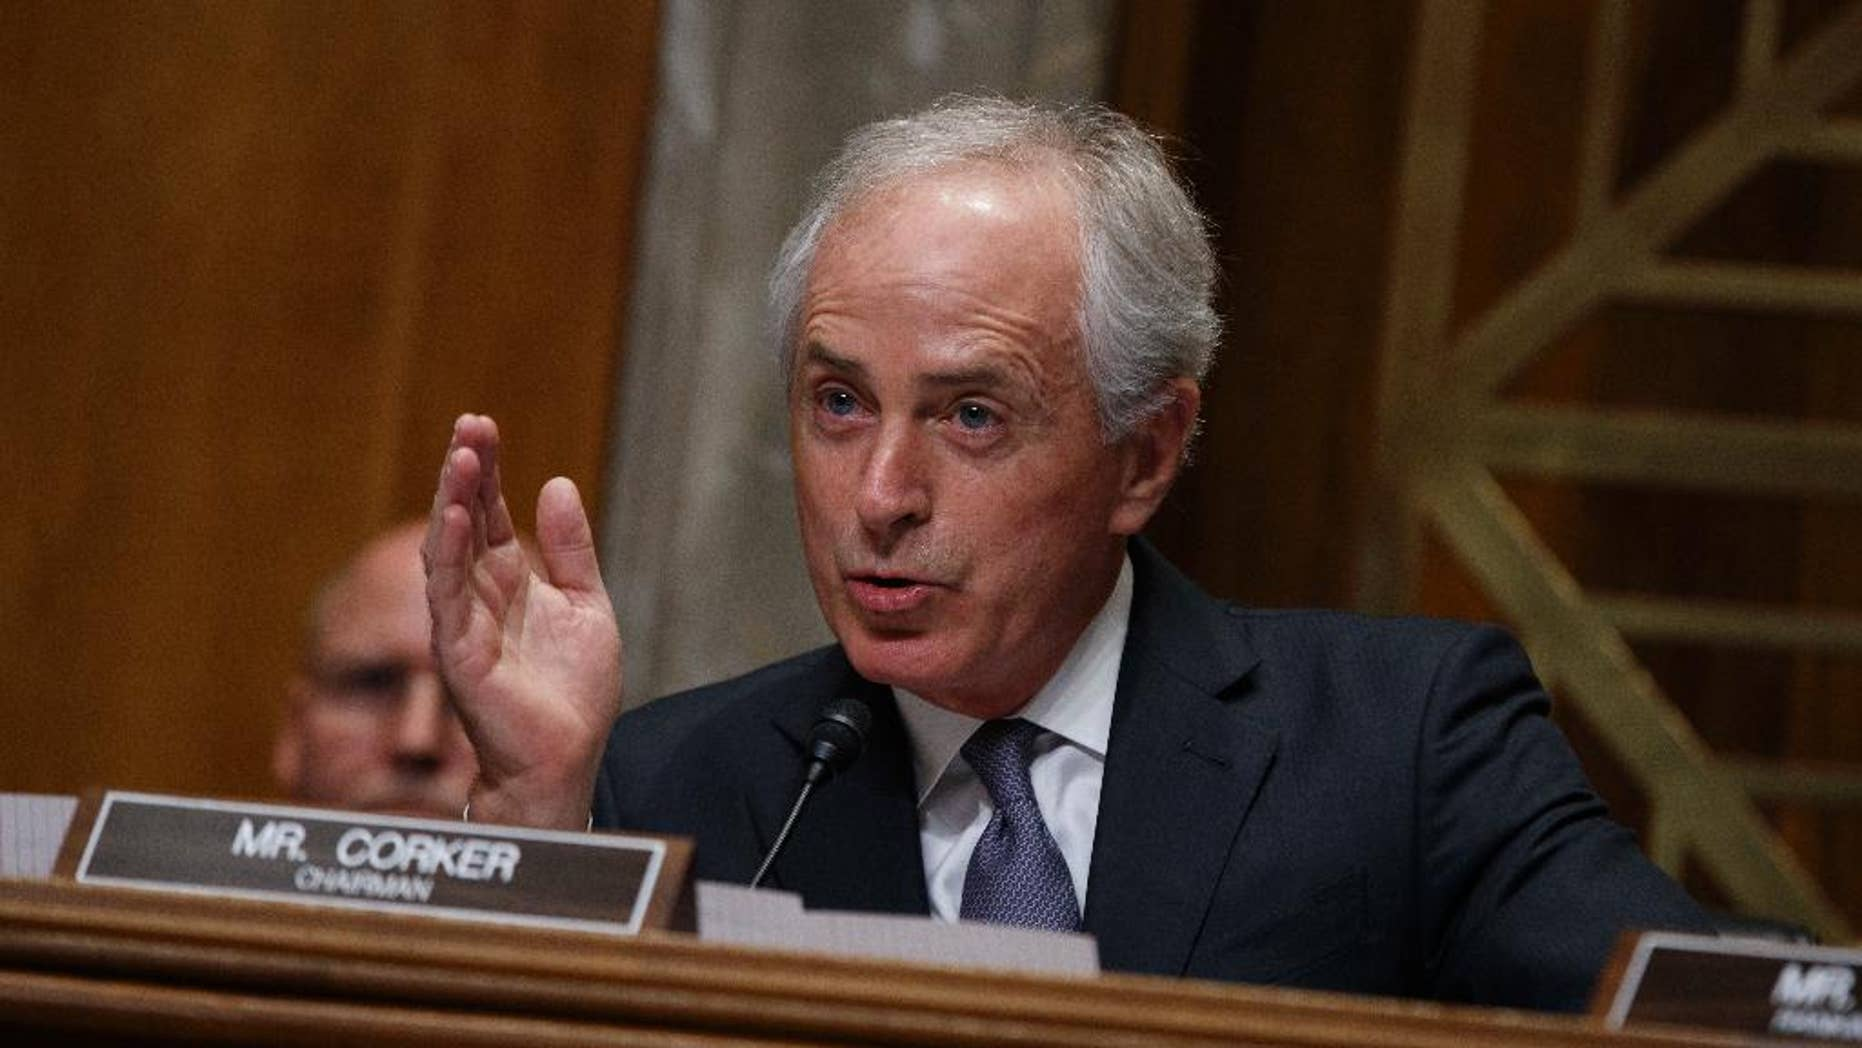 """FILE - In this Wednesday, Jan. 18, 2017, file photo, Sen. Bob Corker, R-Tenn., the chairman of the Foreign Relations Committee, speaks on Capitol Hill in Washington during the committee's confirmation hearing for UN Ambassador-designate, South Carolina Gov. Nikki Haley. When President Donald Trump paused the nation's refugee program with the stroke of a pen, top congressional leaders of his own party were left to find out the same way the general public did: from the media as Trump signed the order. Corker told reporters Monday, Jan. 30: """"I guess one of you guys probably told me about it. Thank you for that."""" Lawmakers complained that they were left in the dark as details of the plan were worked out. (AP Photo/Evan Vucci, File)"""